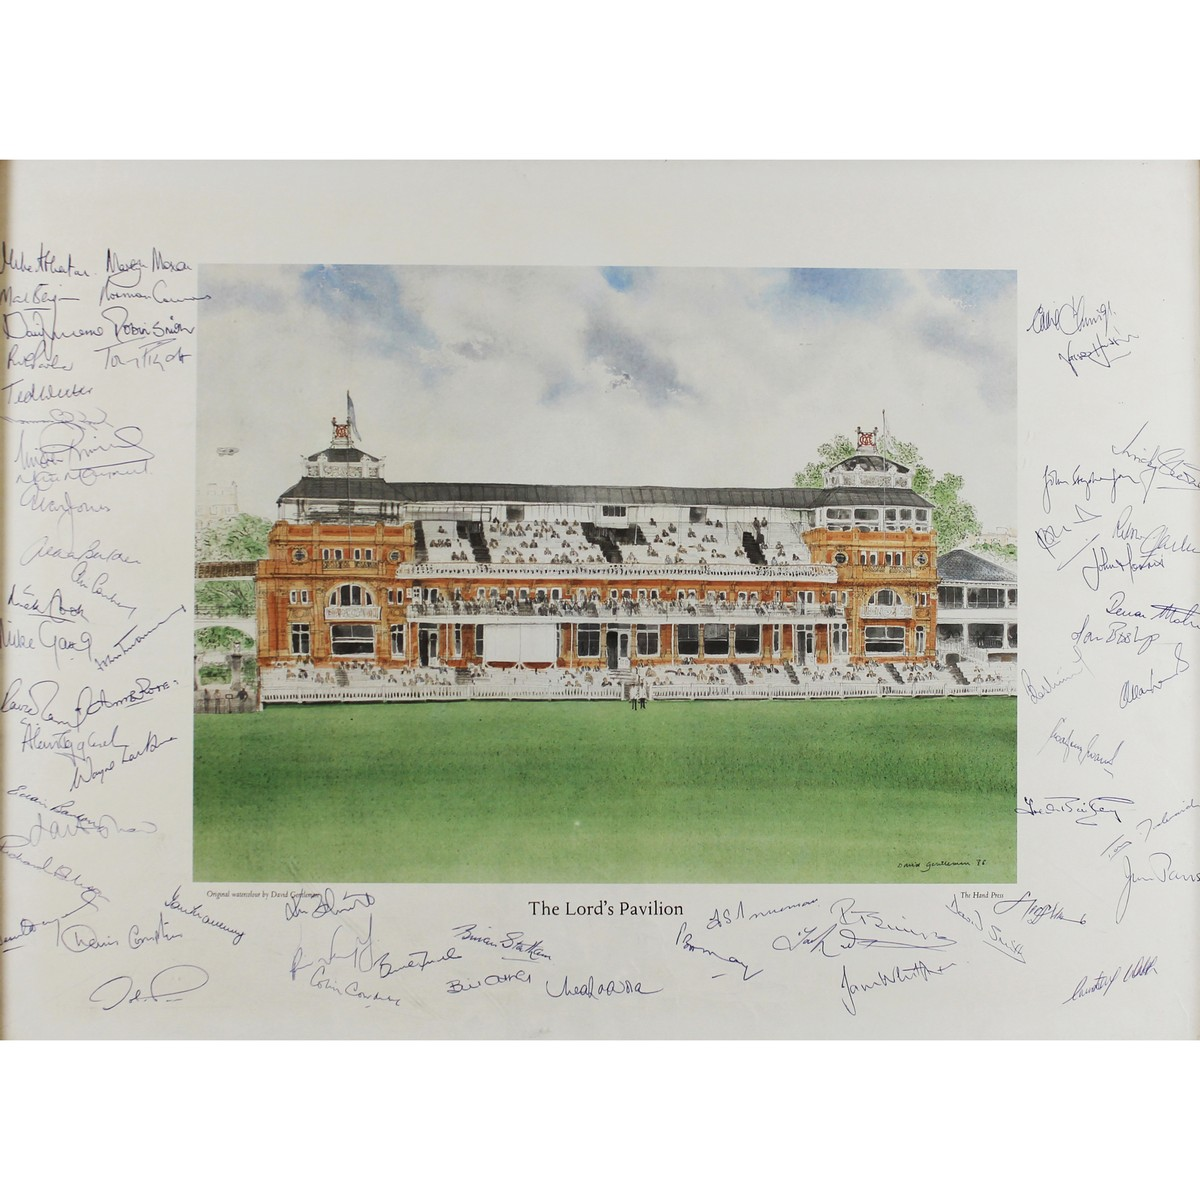 Lot 19 - Gentleman, David b1930 British Lords Pavilion with 57 Signatures of great cricketers